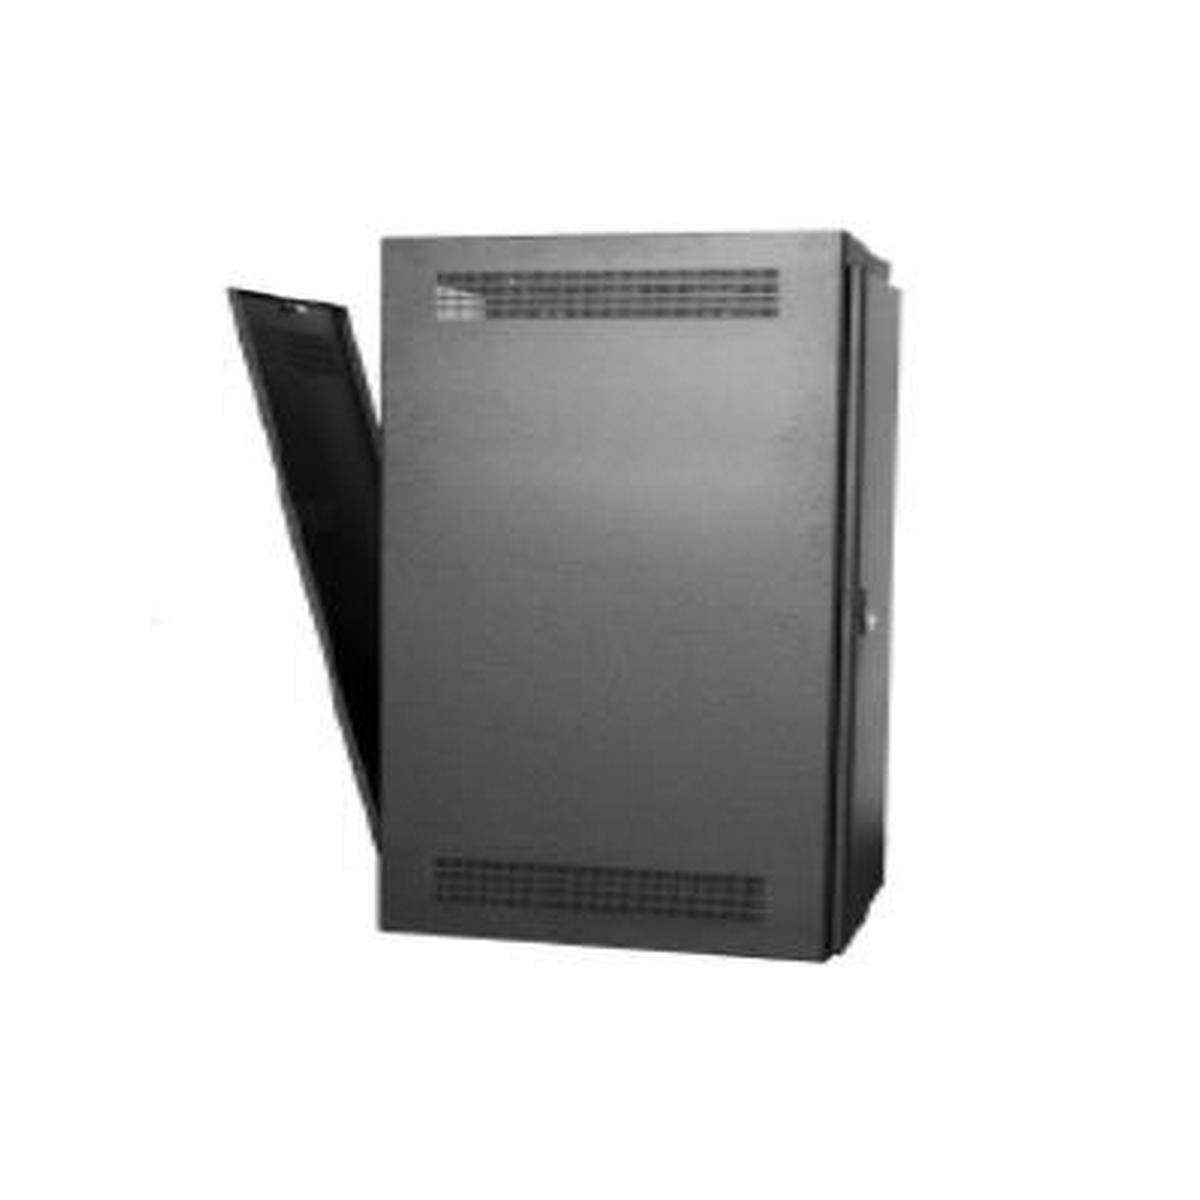 Rack-Rear Access Cover-44U, fits LHR Series, Locking/Vented, Blk